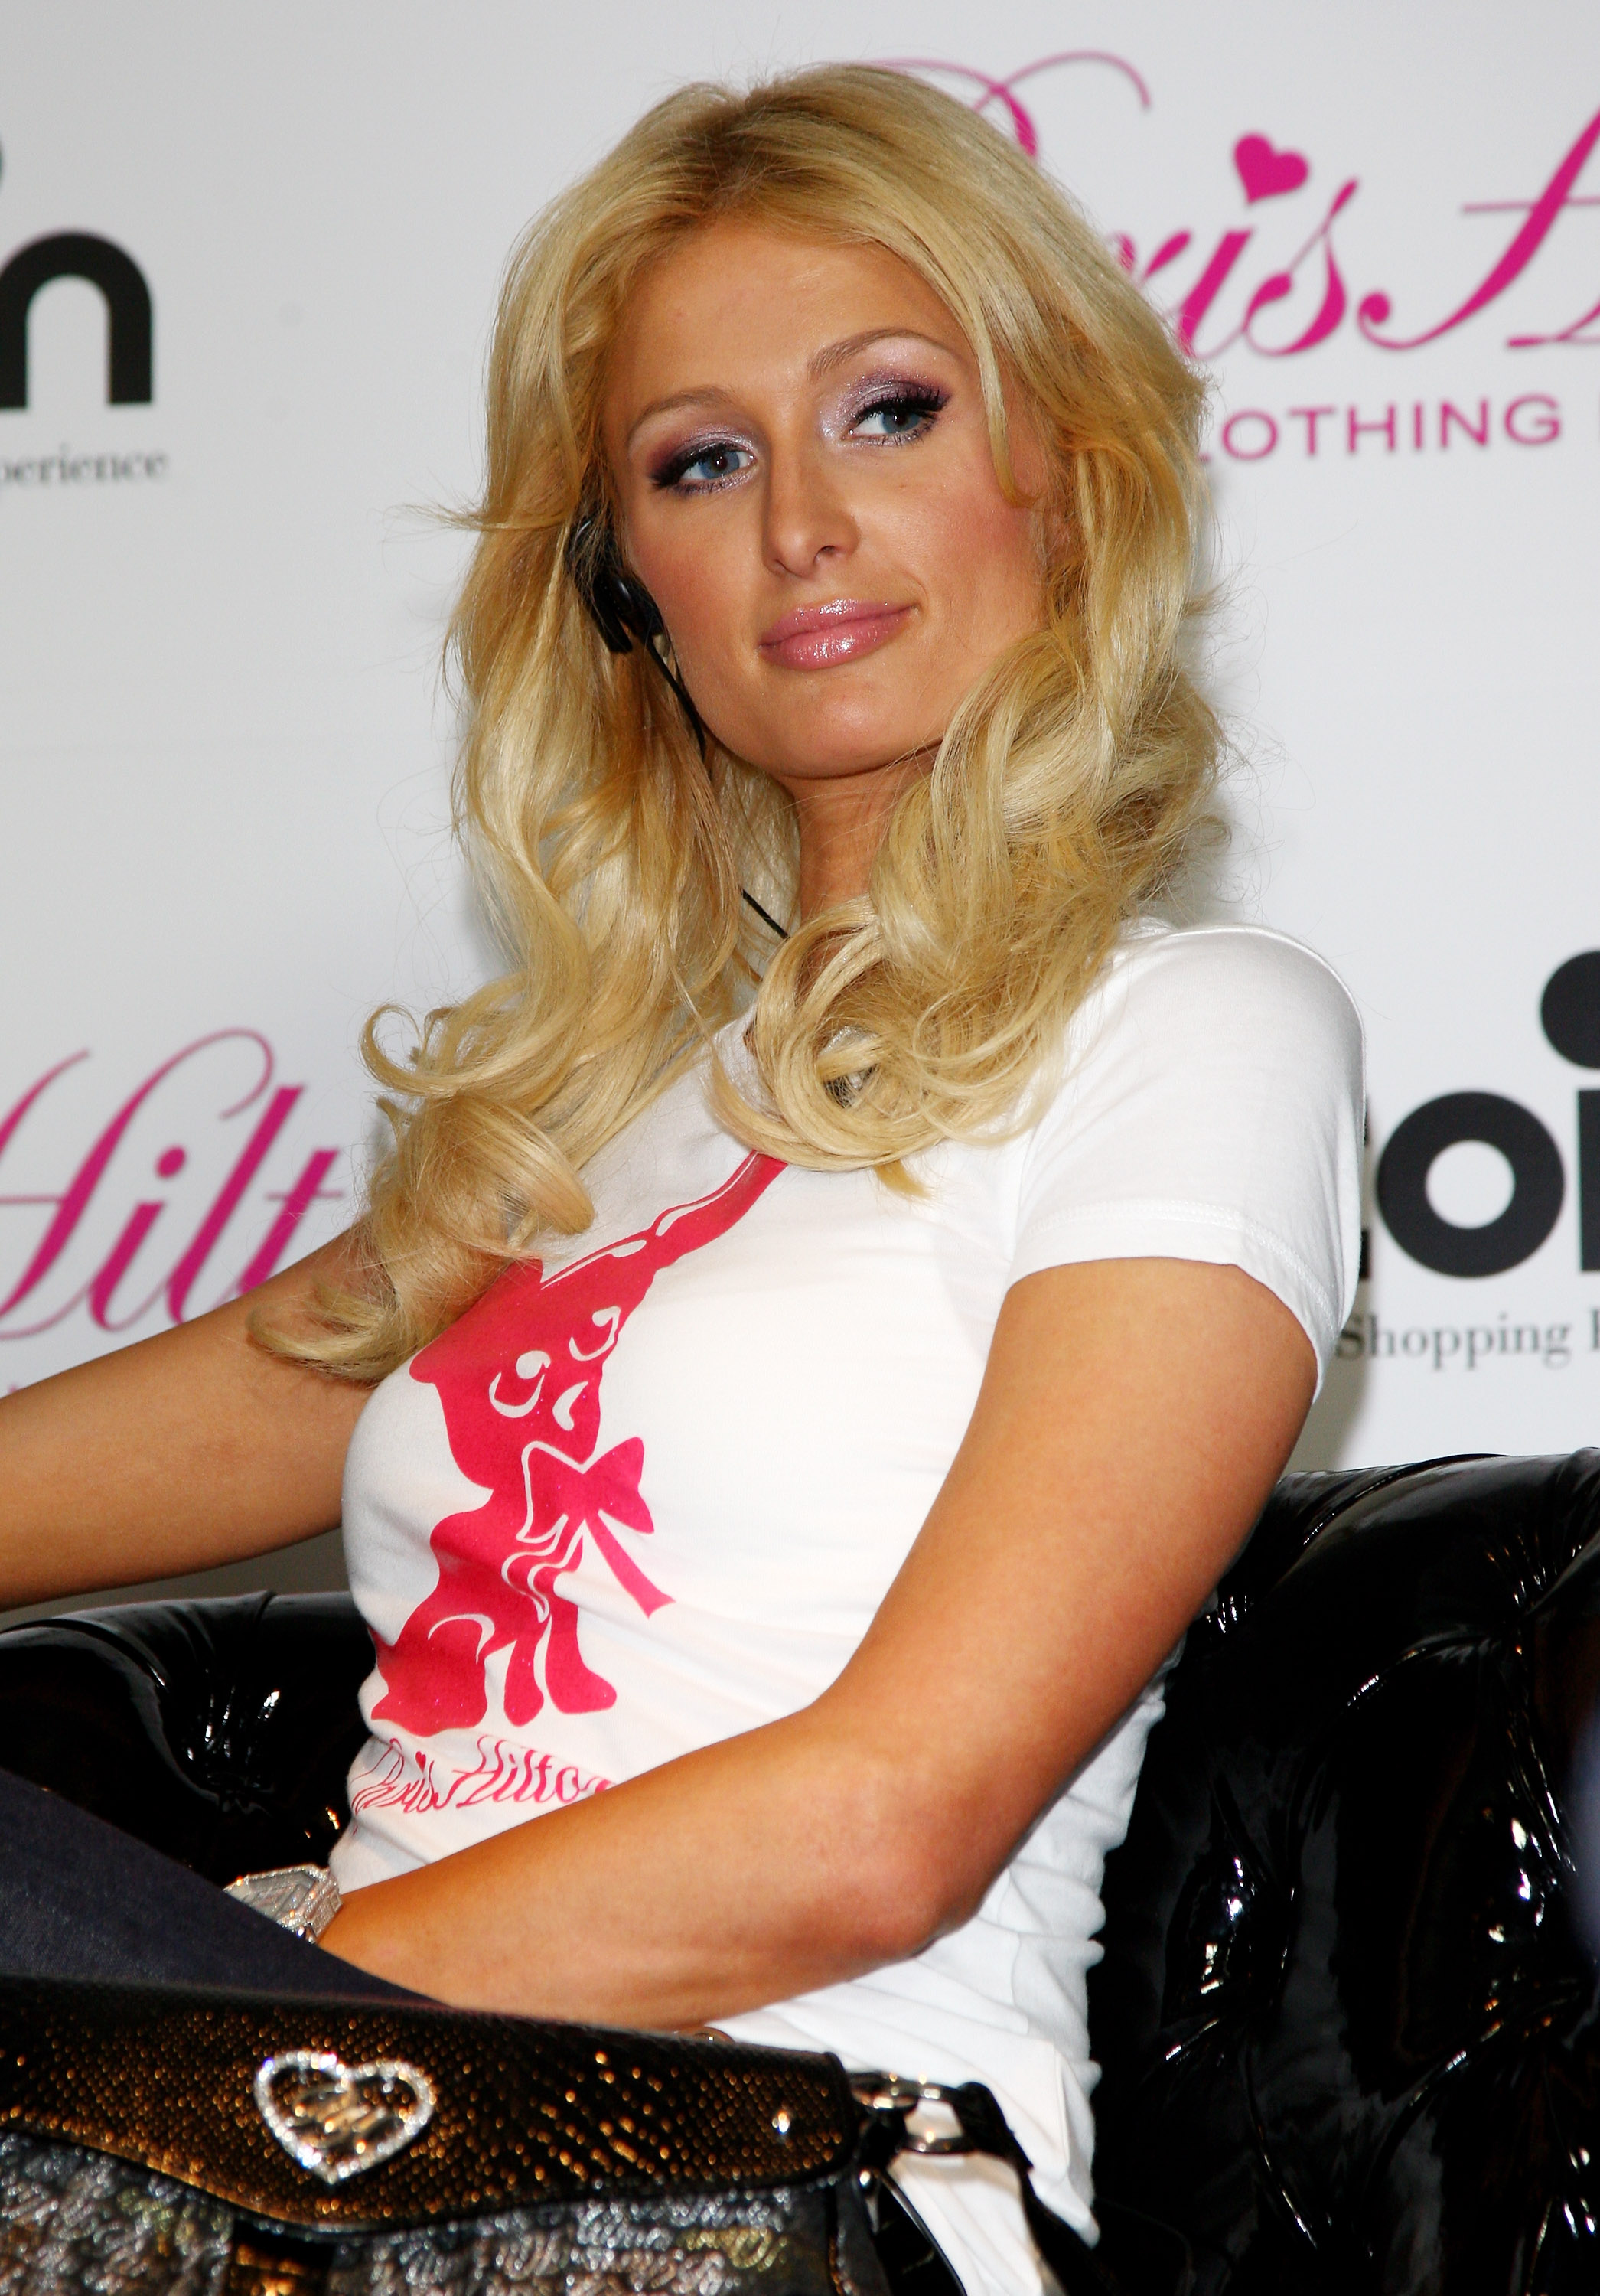 11767_Celebutopia-Paris_Hilton-Launch_of_Paris_Hilton_clothing_line-45_122_494lo.jpg